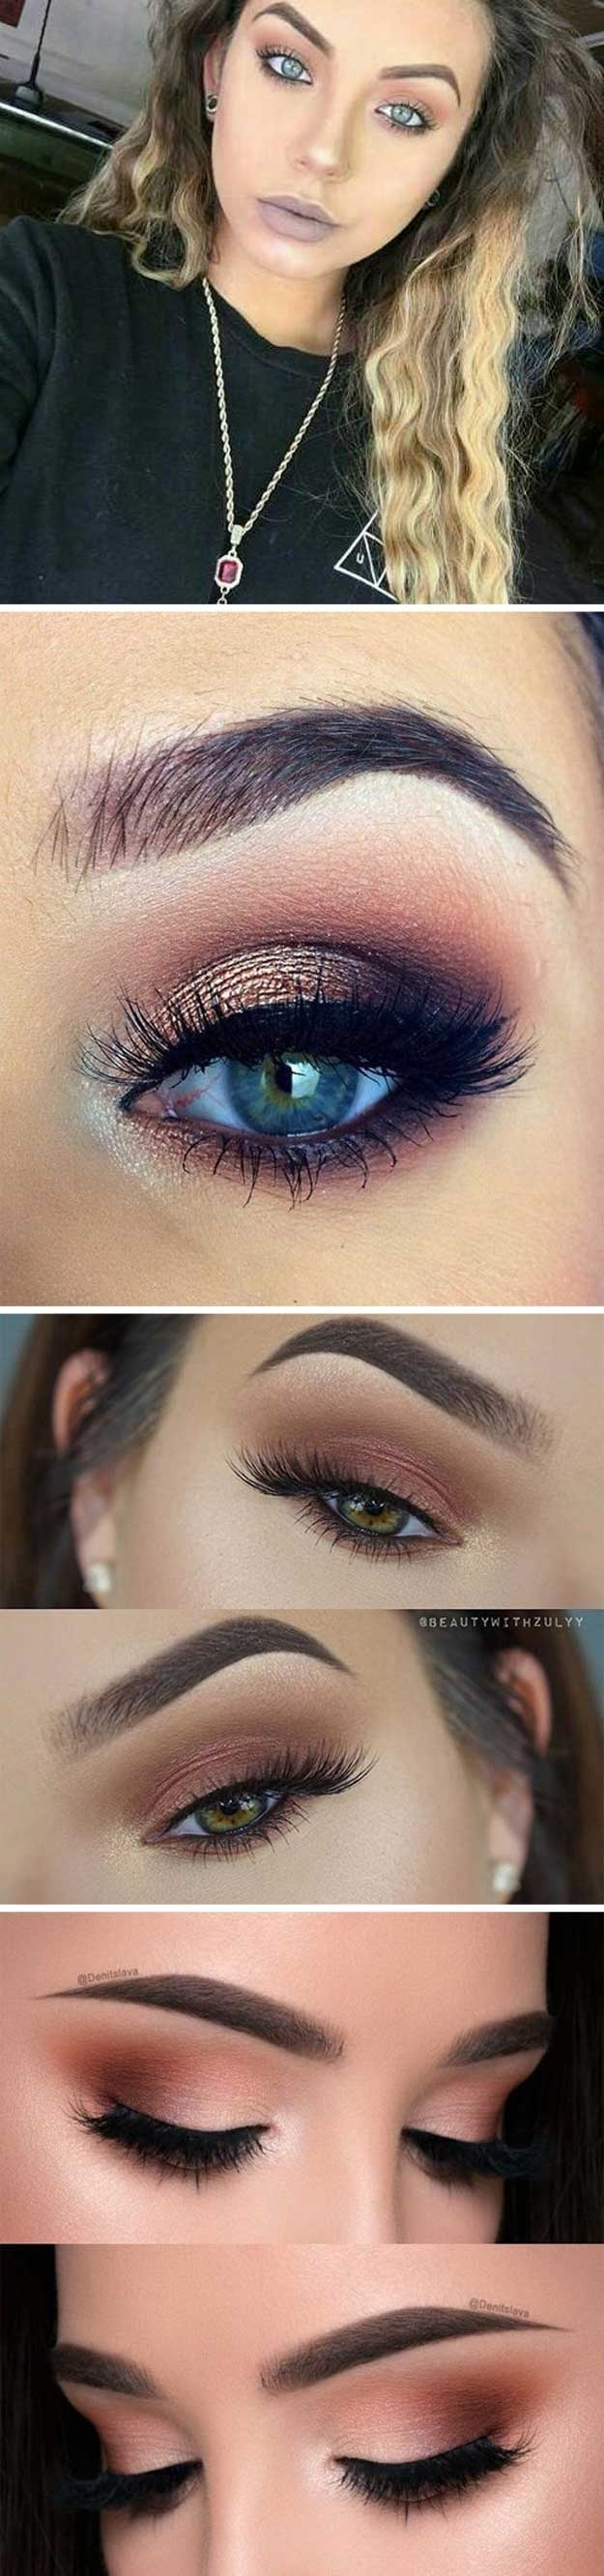 makeup for blue eyes and light brown hair | kakaozzank.co